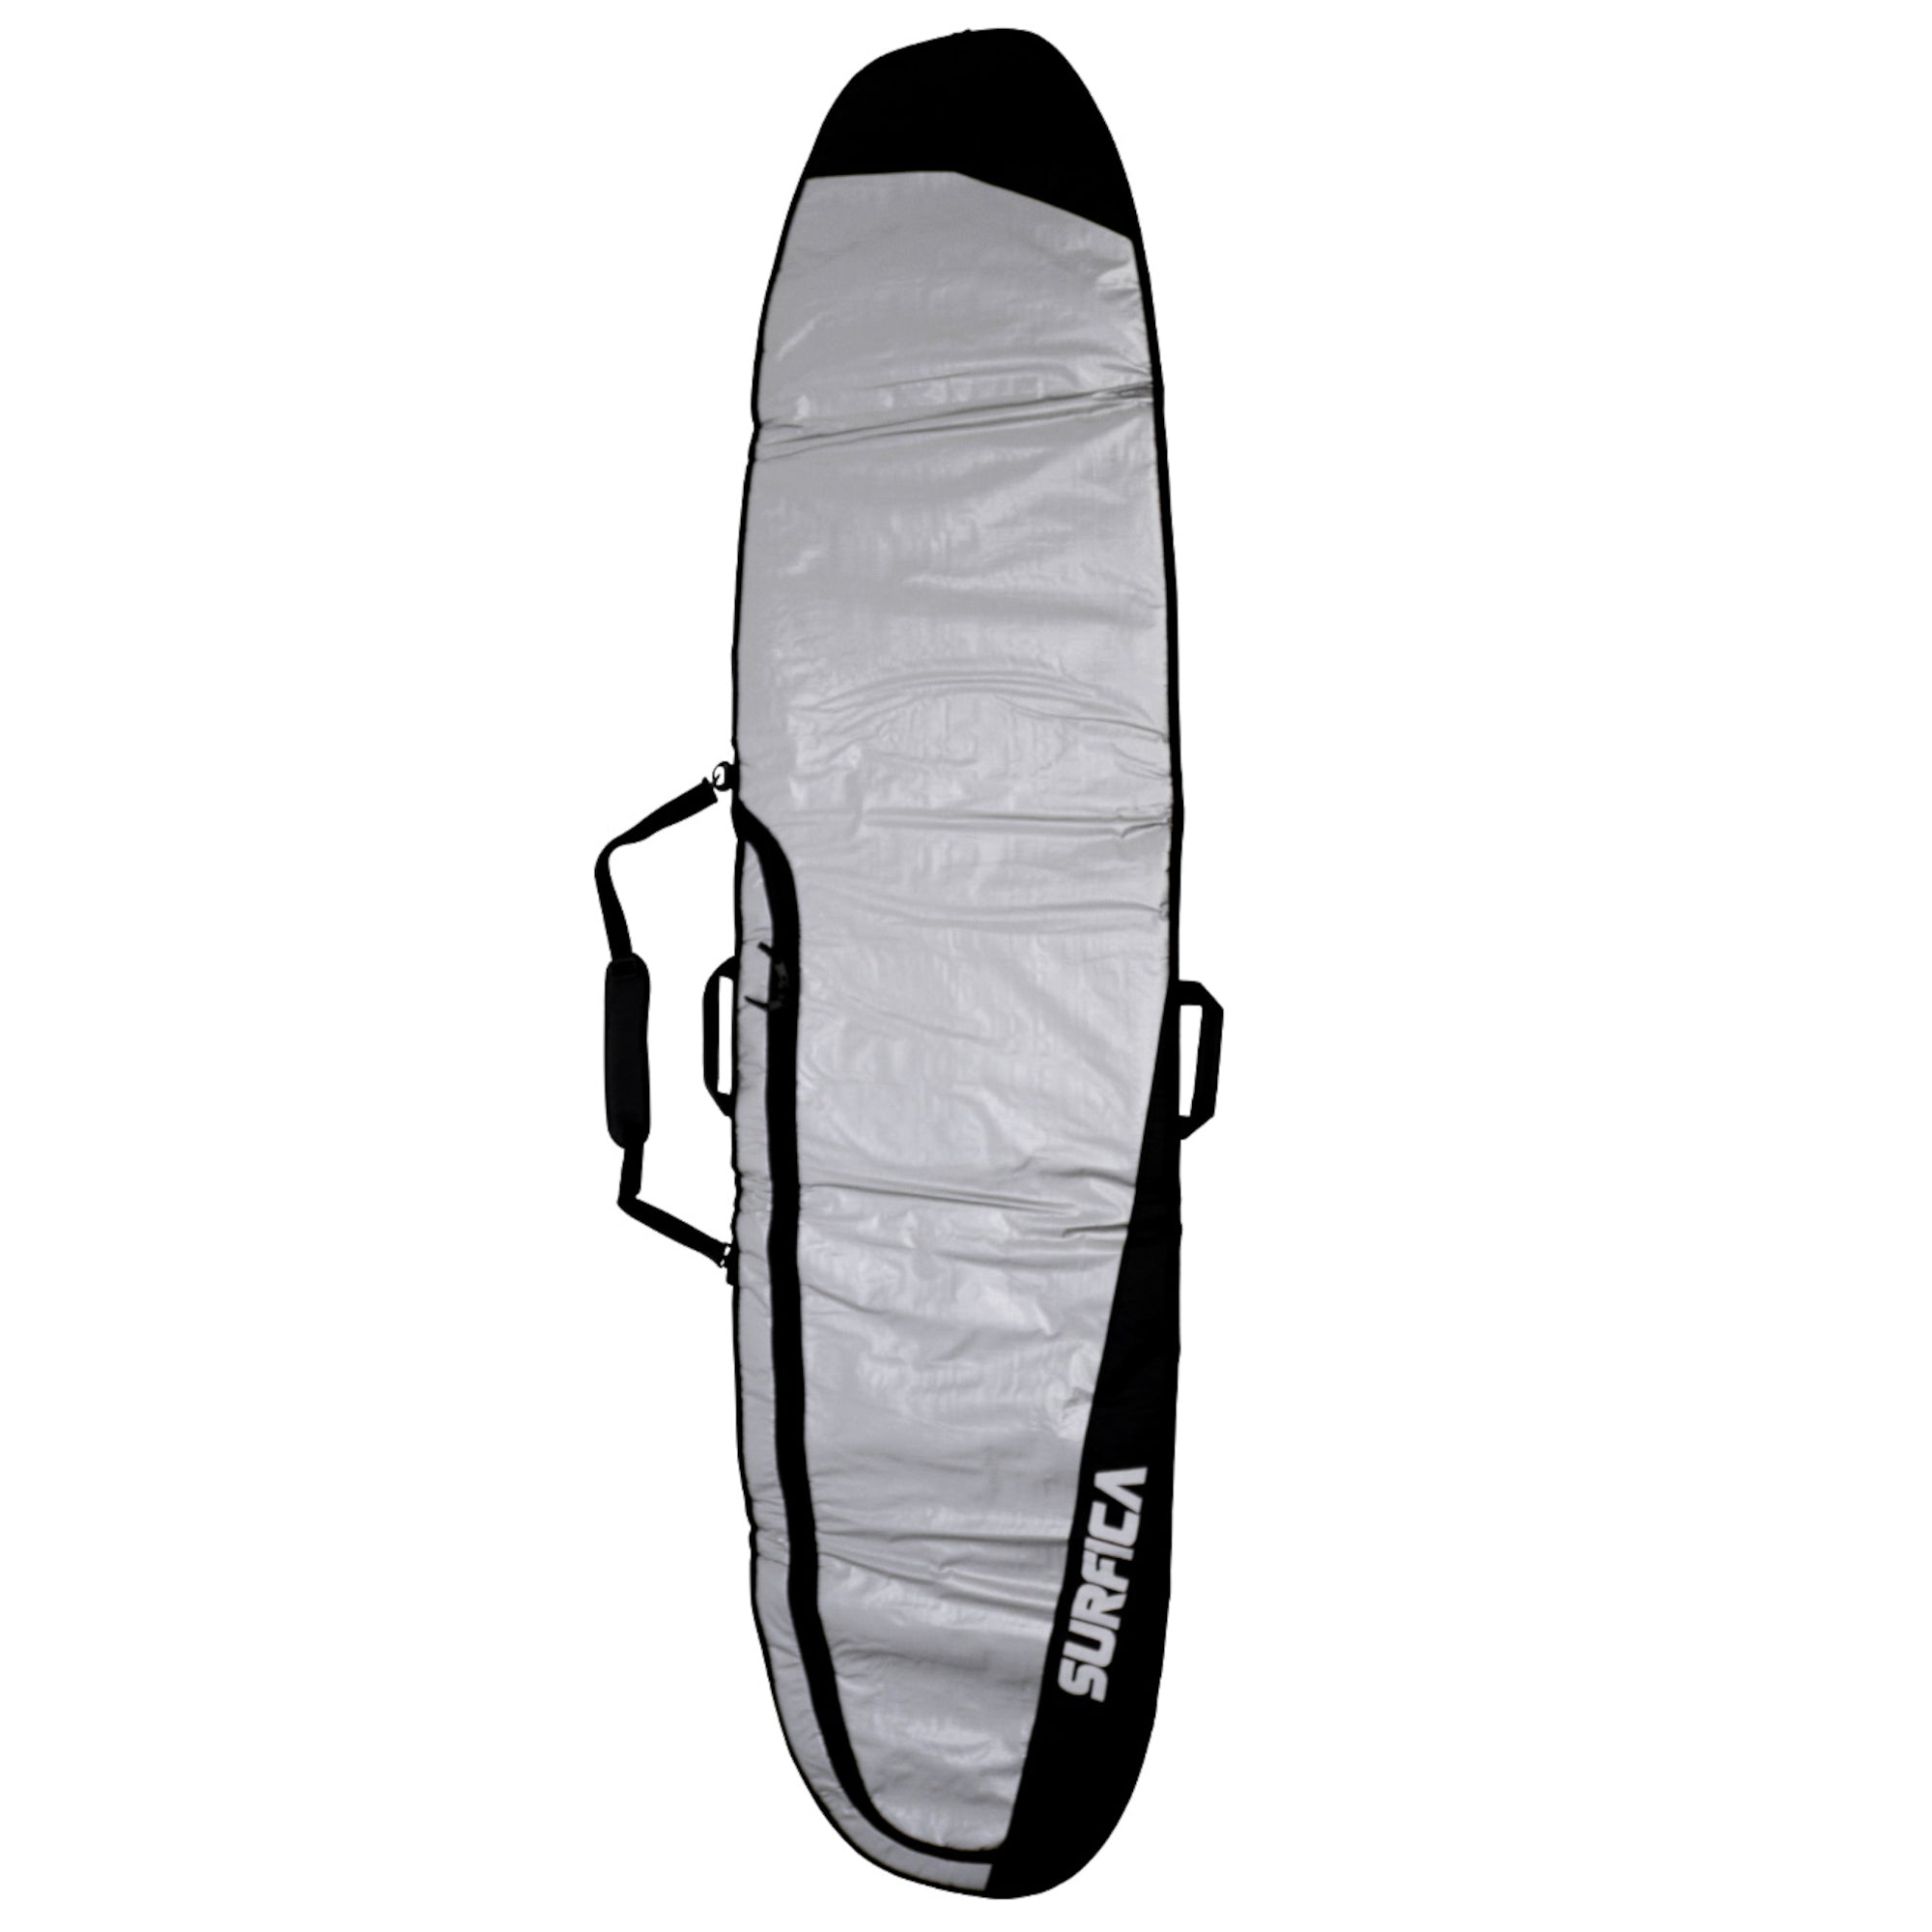 Surfica Longboard Board Bag